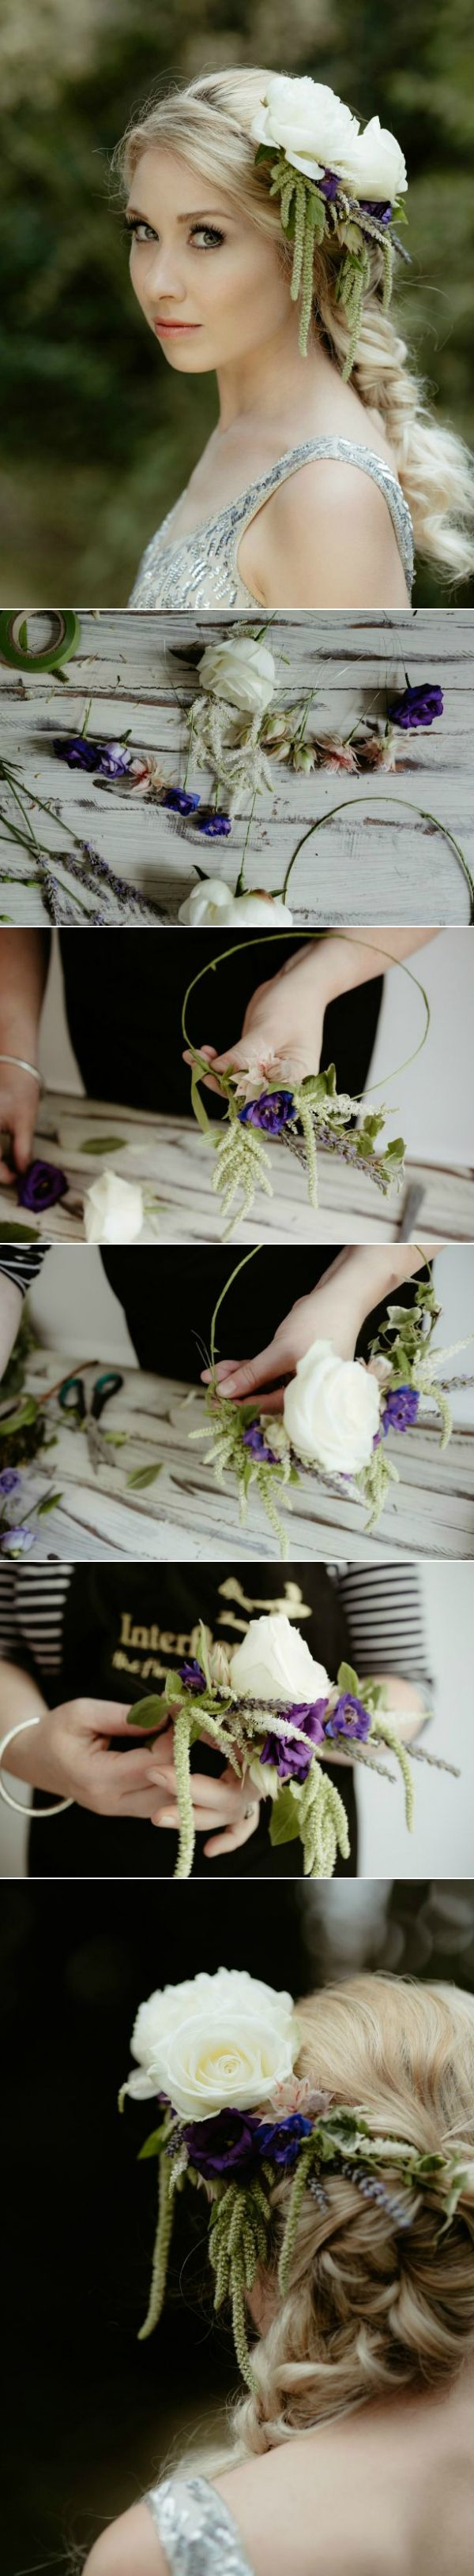 A half flower crown is a gorgeous floral headdress, more subtle than a full crown and lovely for Boho brides as it makes a striking organic alternative to the tiara. Follow this step by step tutorial by the experts at Interflora and find out how to make a half flower crown for your wedding day.